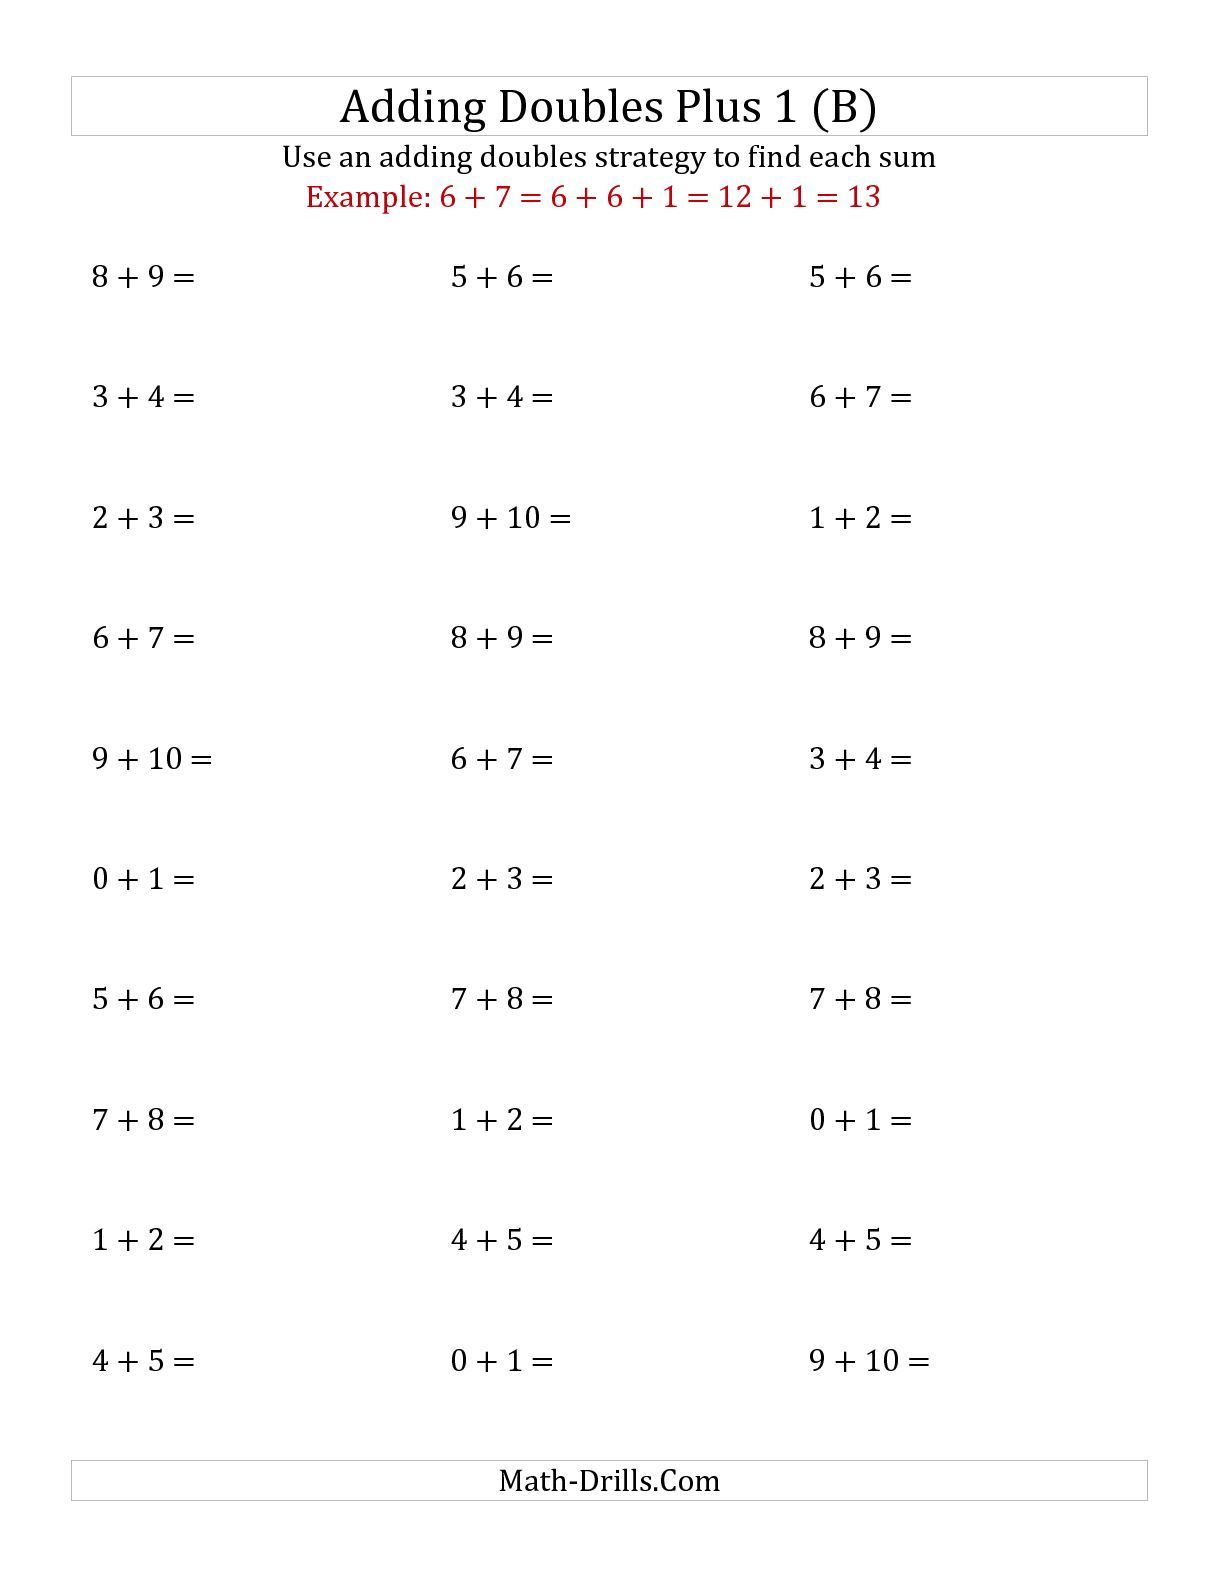 The Adding Doubles Plus 1 Small Numbers B Addition Worksheet